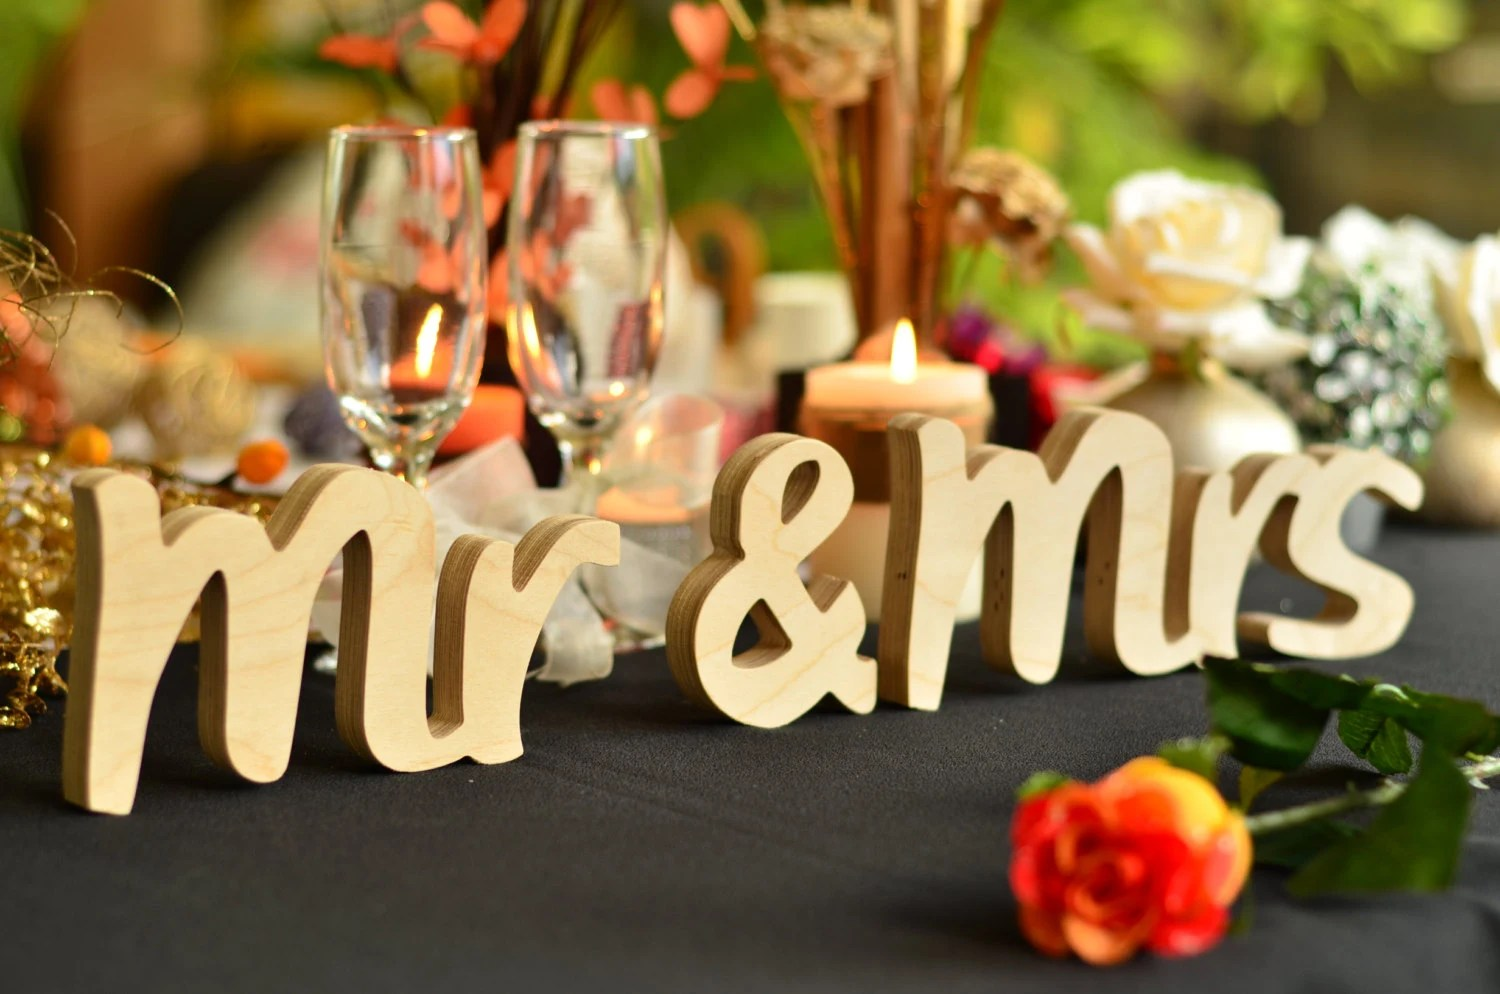 Bridal Shower Gift Mr & Mrs 3D Letters Cut From Wood Wedding